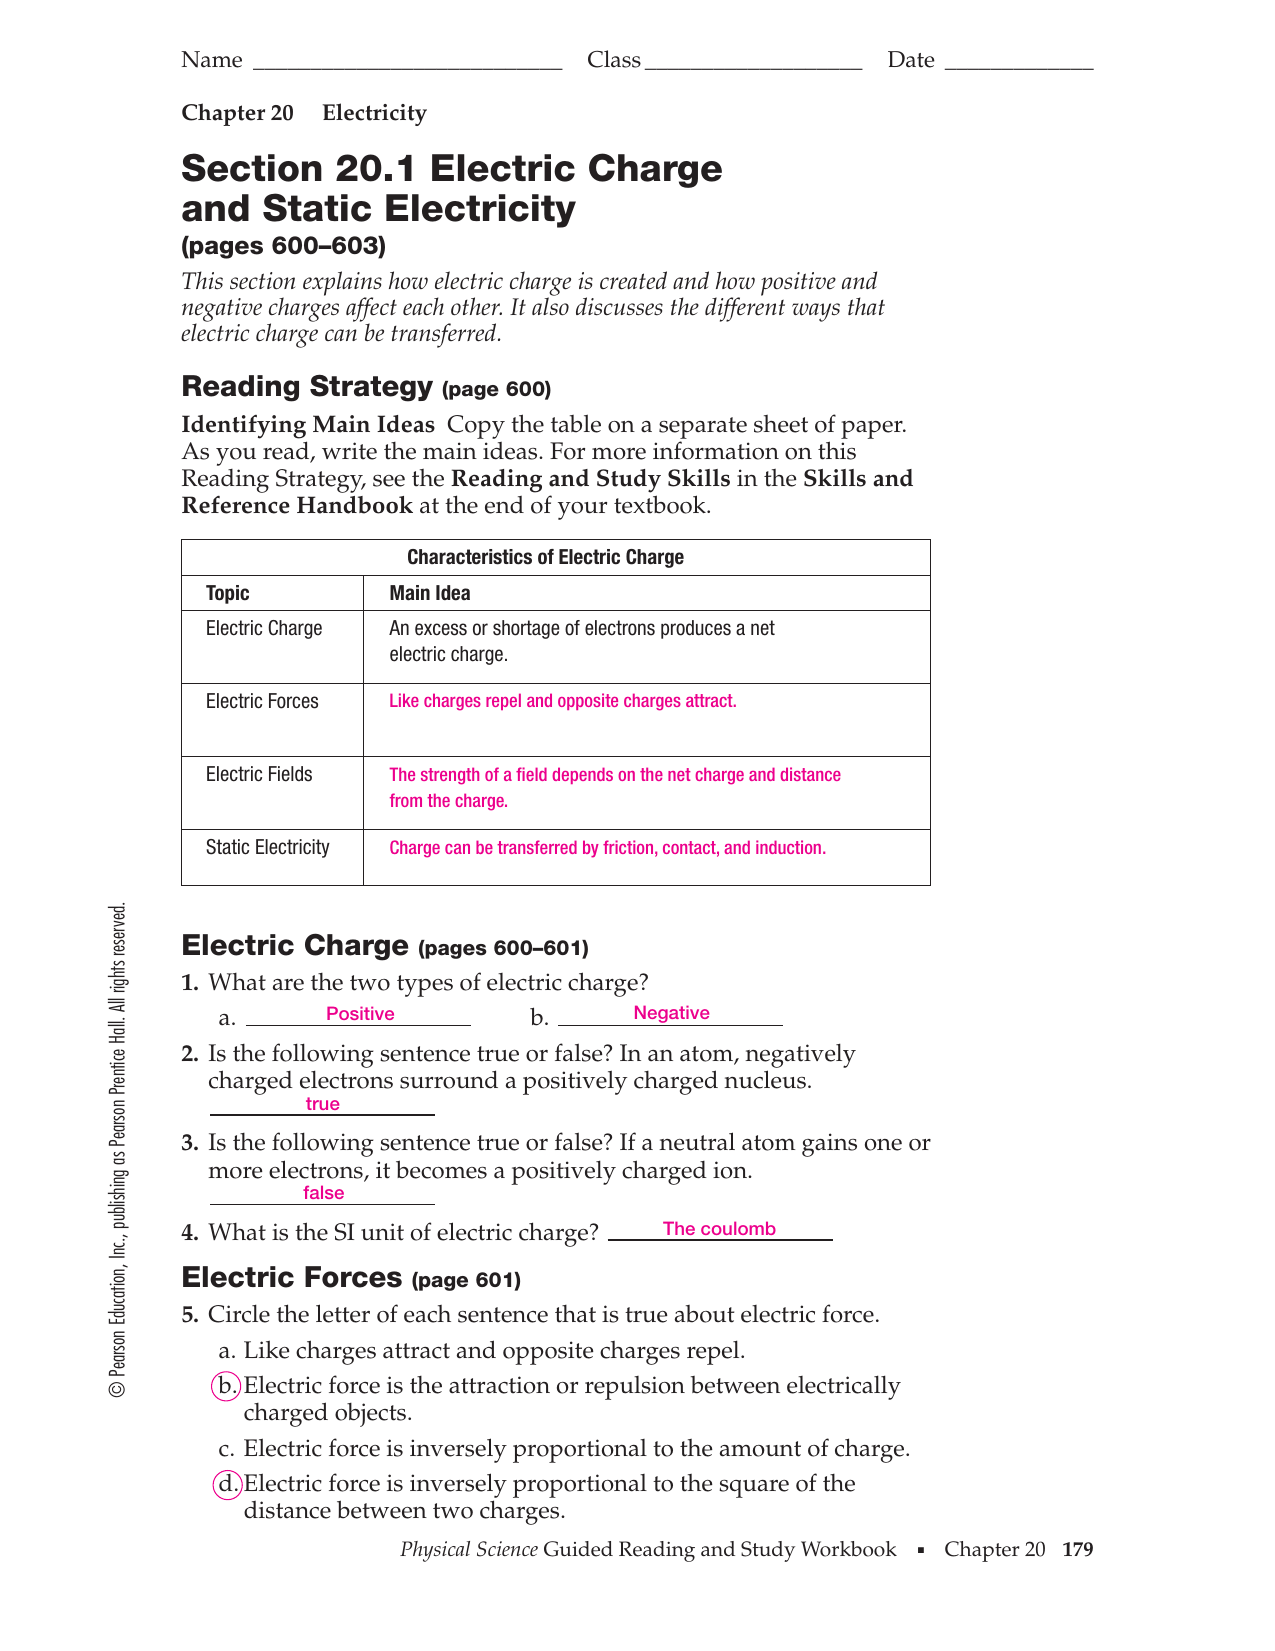 Section 20 1 Electric Charge and Static Electricity